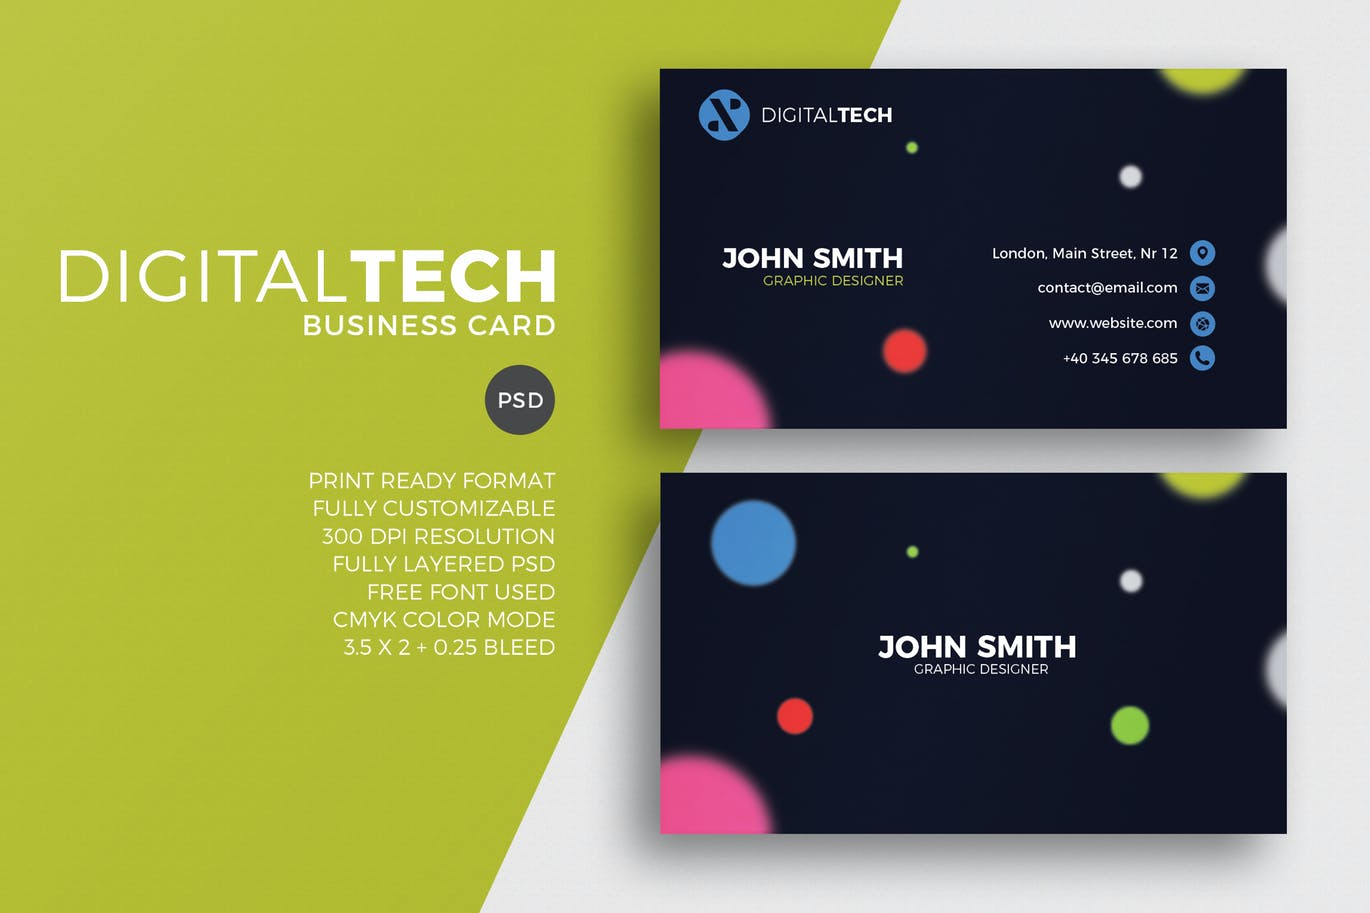 Digital Tech Business Card by EightonesixStudios on Envato Elements